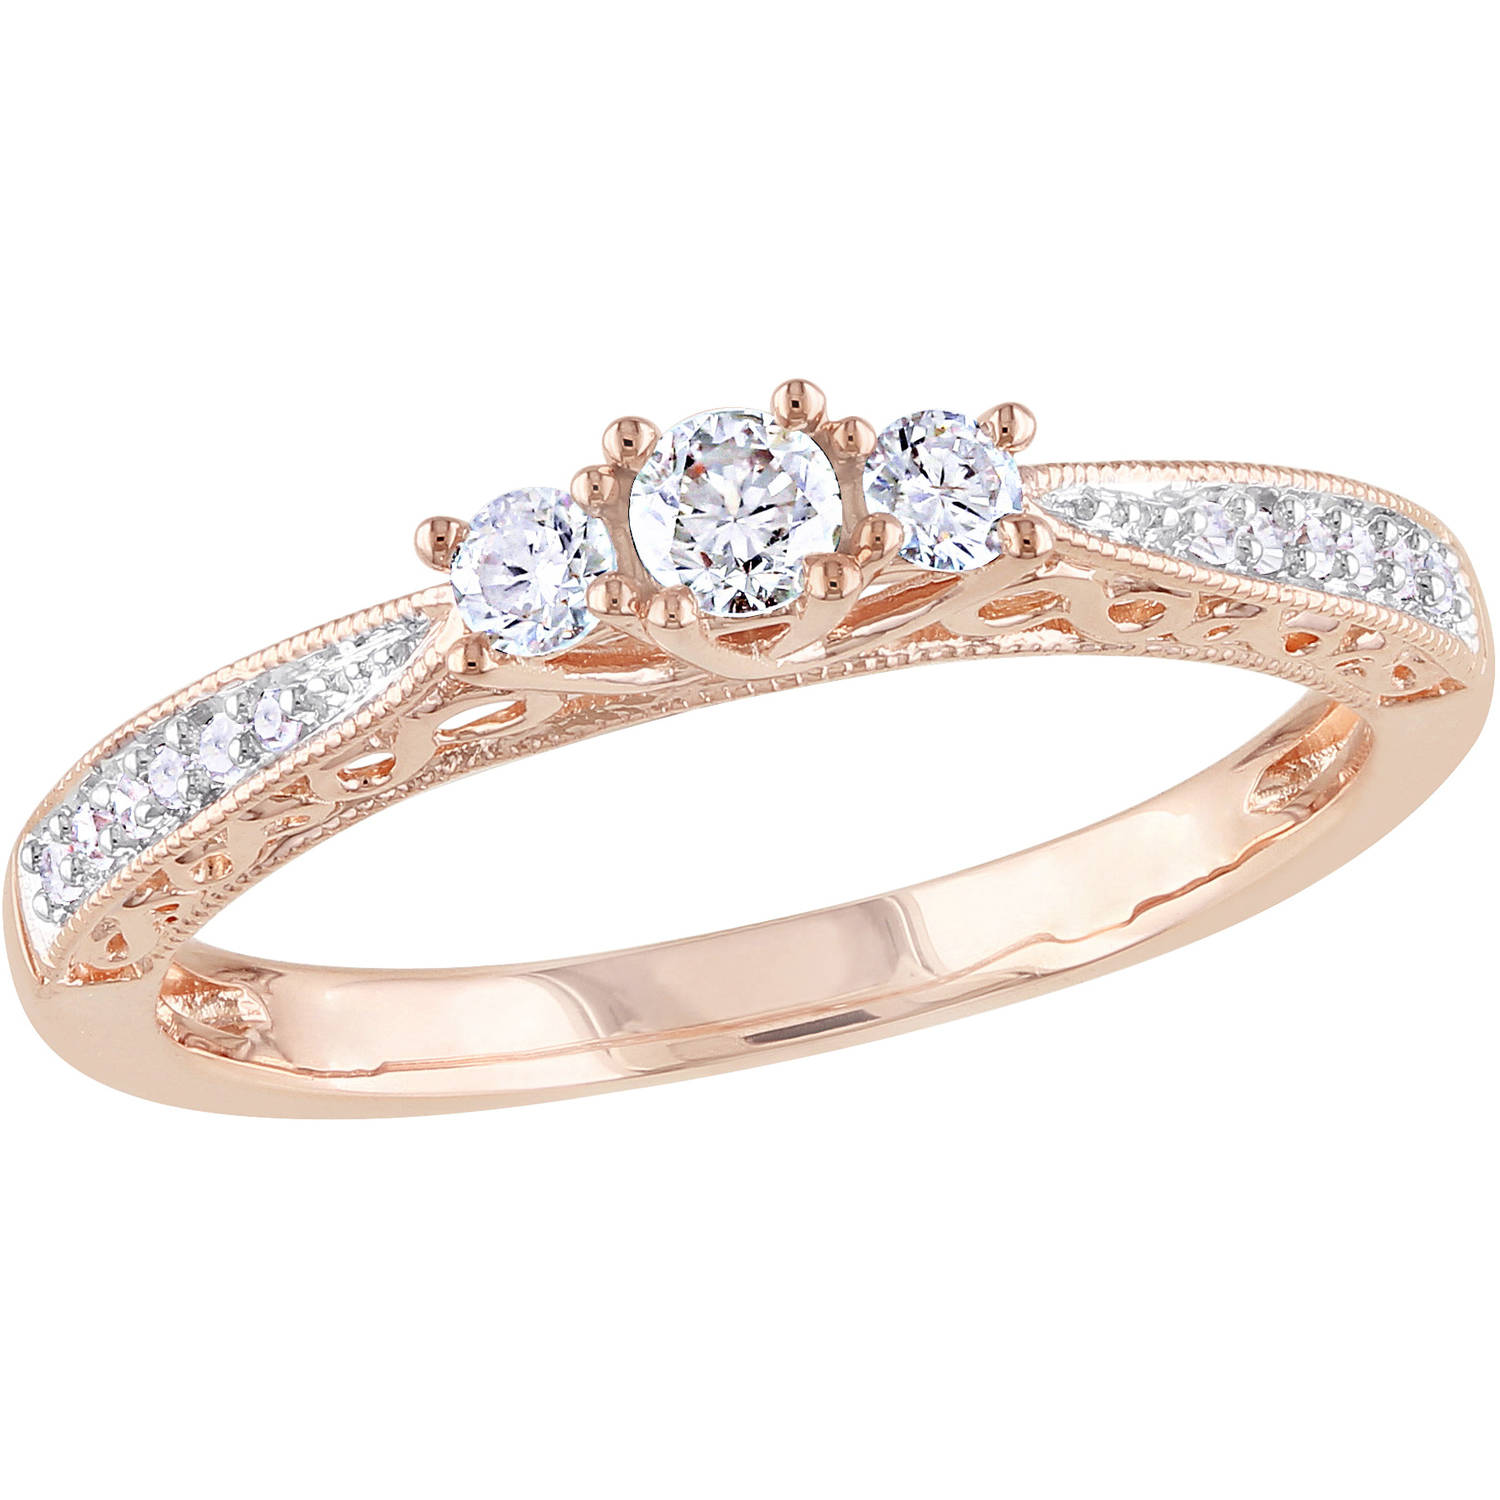 Miabella 1/4 Carat T.W. Diamond 10kt Rose Gold Three Stone Engagement Ring